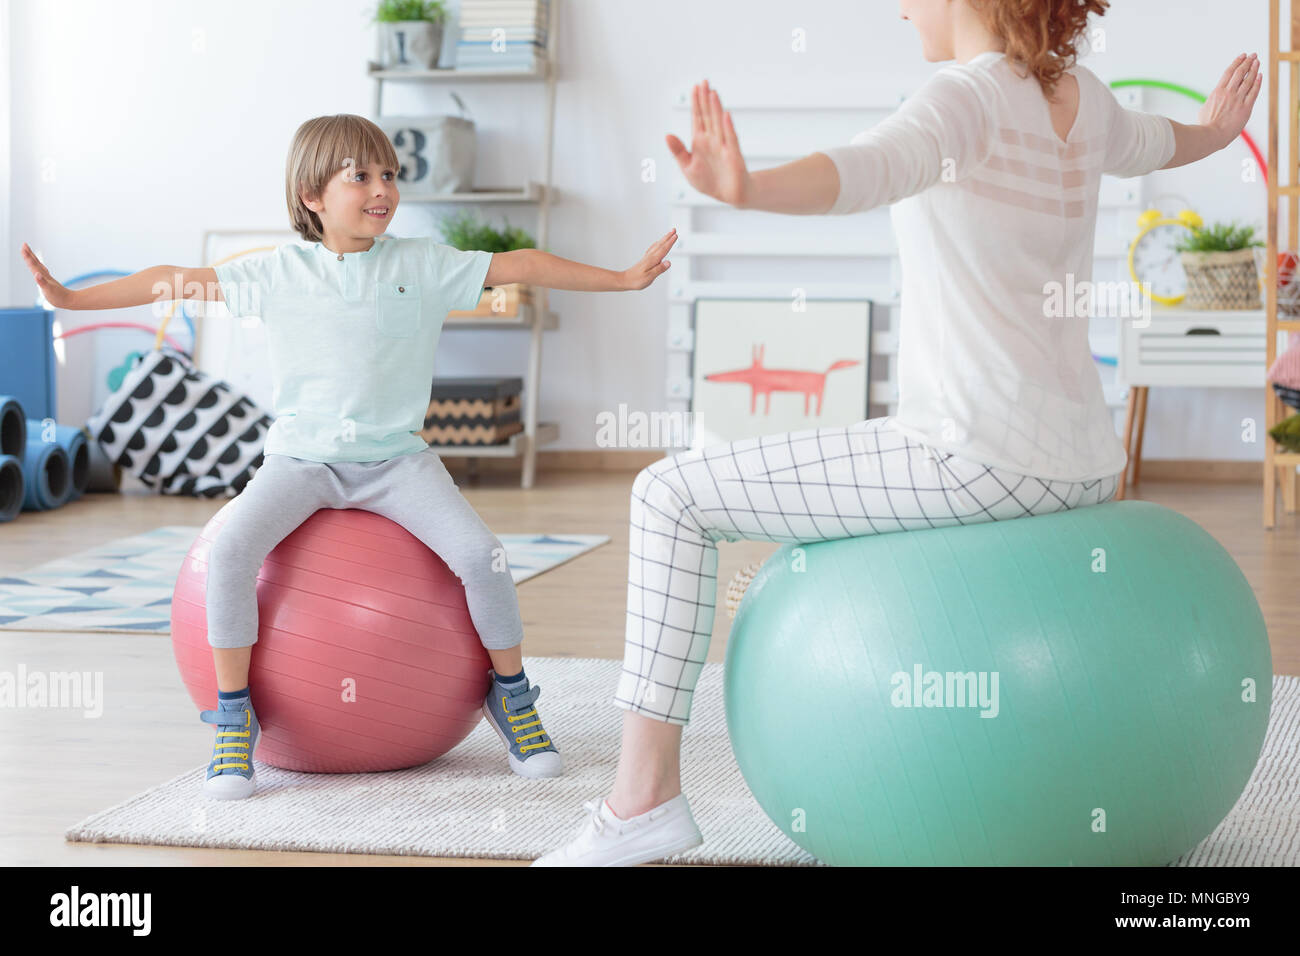 Physiotherapist and young boy doing stretching exercise on colorful balls in bright room - Stock Image